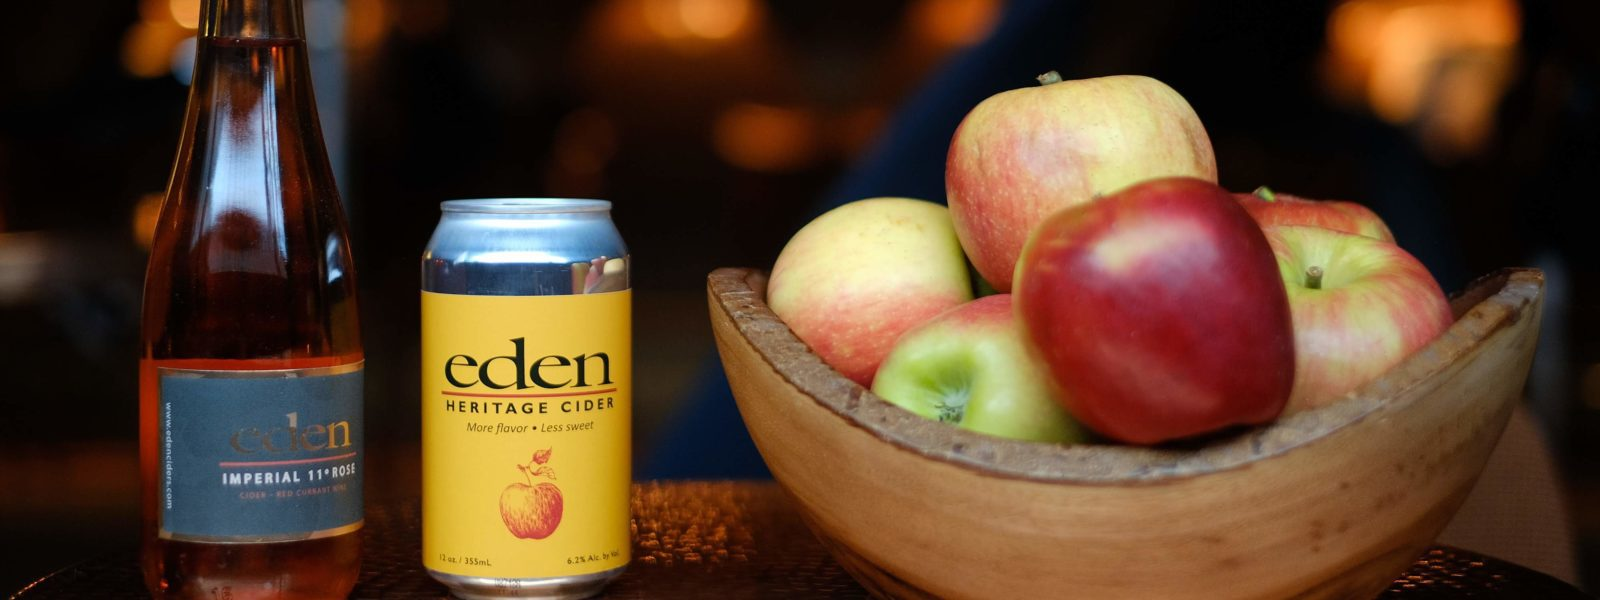 A bottle and can of cider with bowl of apples.